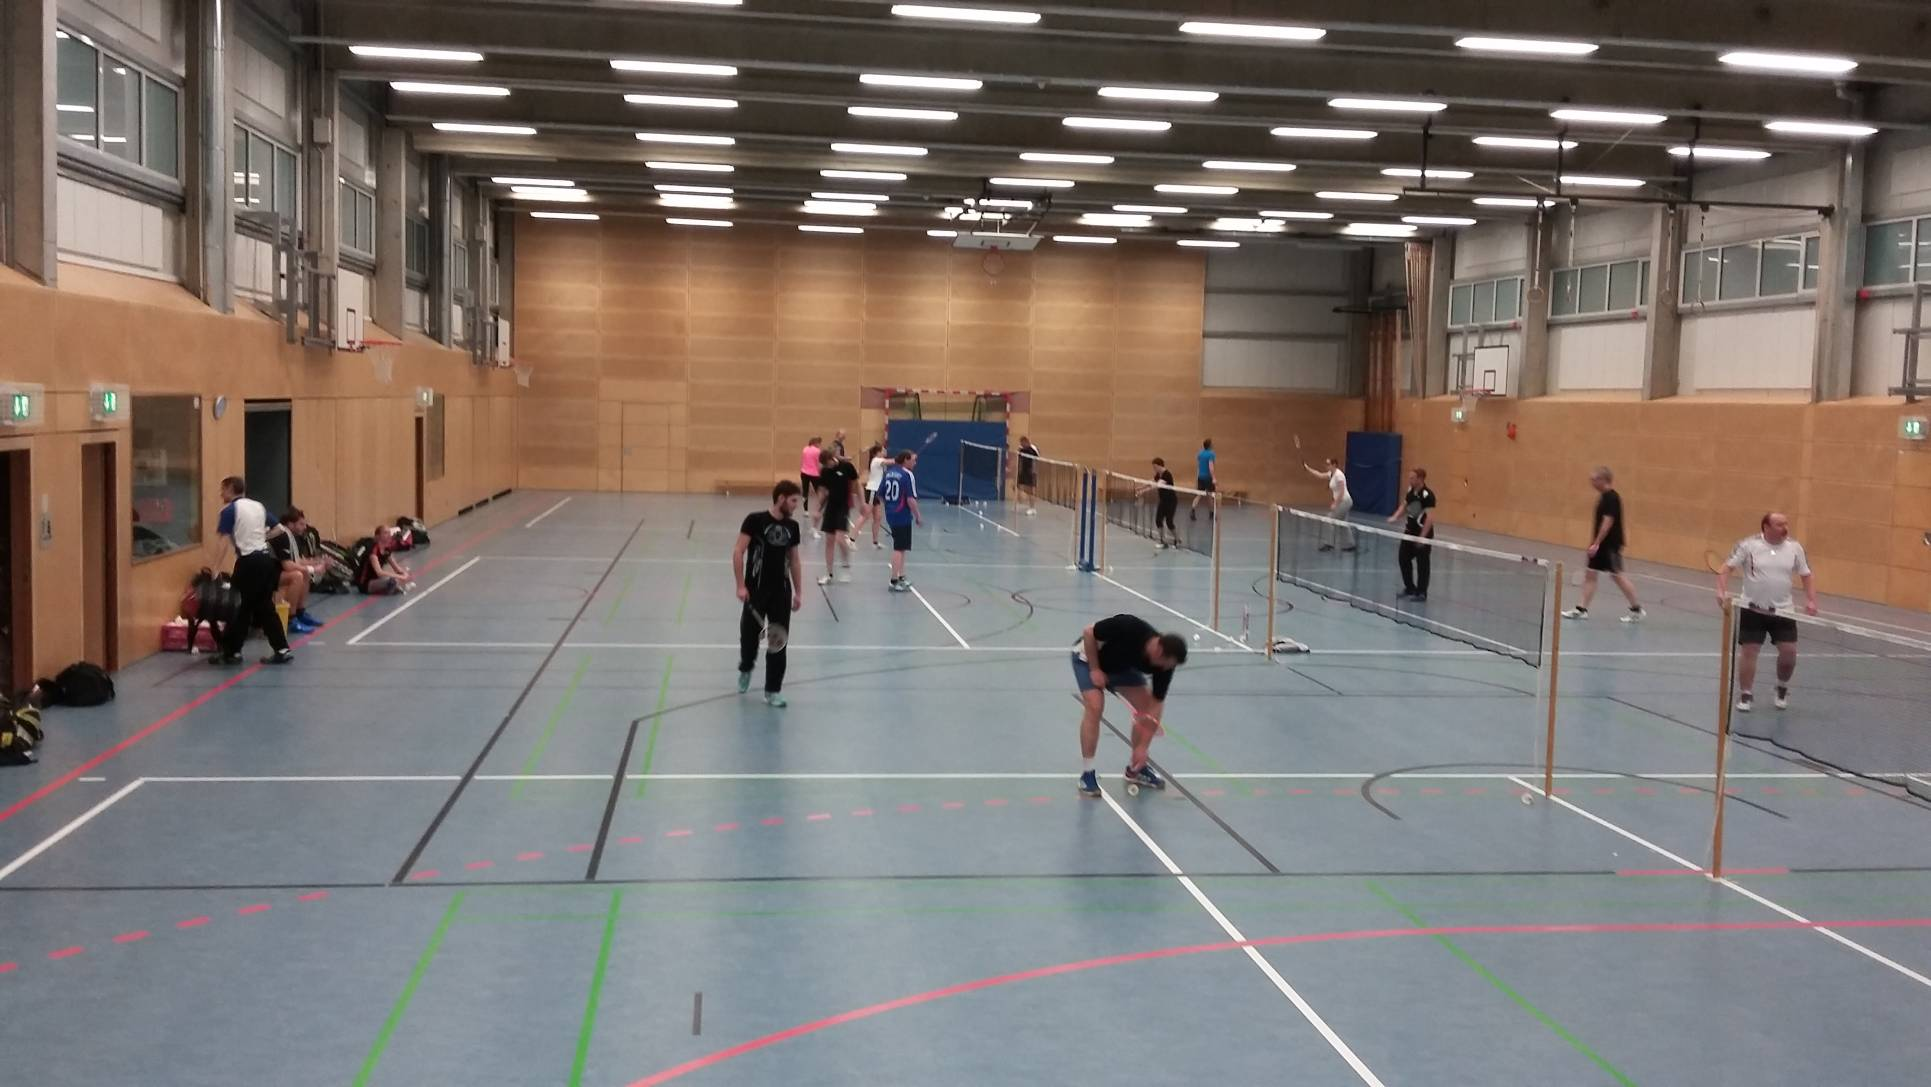 Trainingsbetrieb (2)